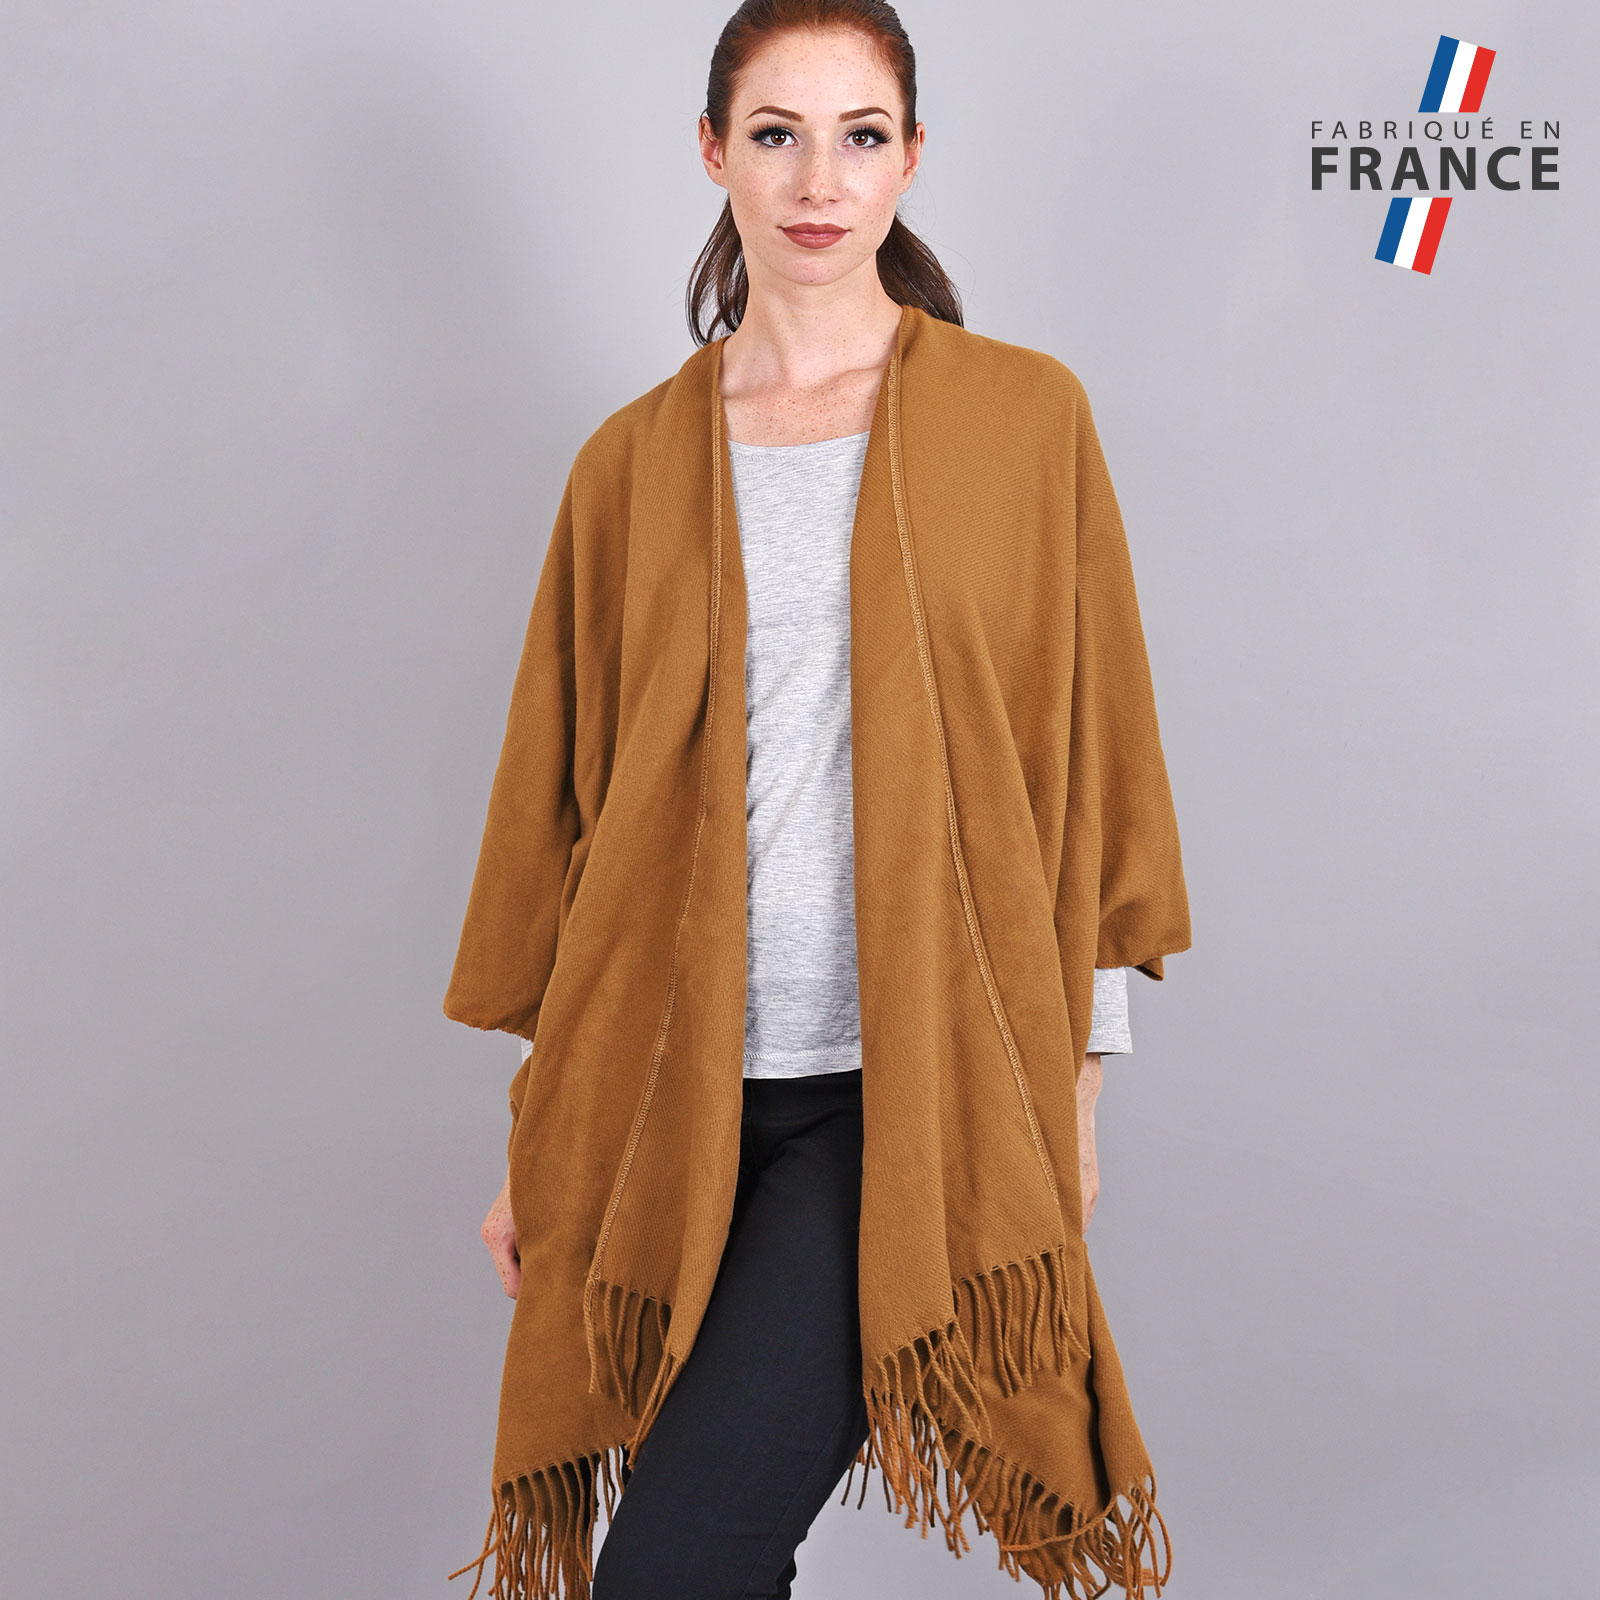 AT-03988-VF16-1-LB_FR-poncho-a-poches-marron